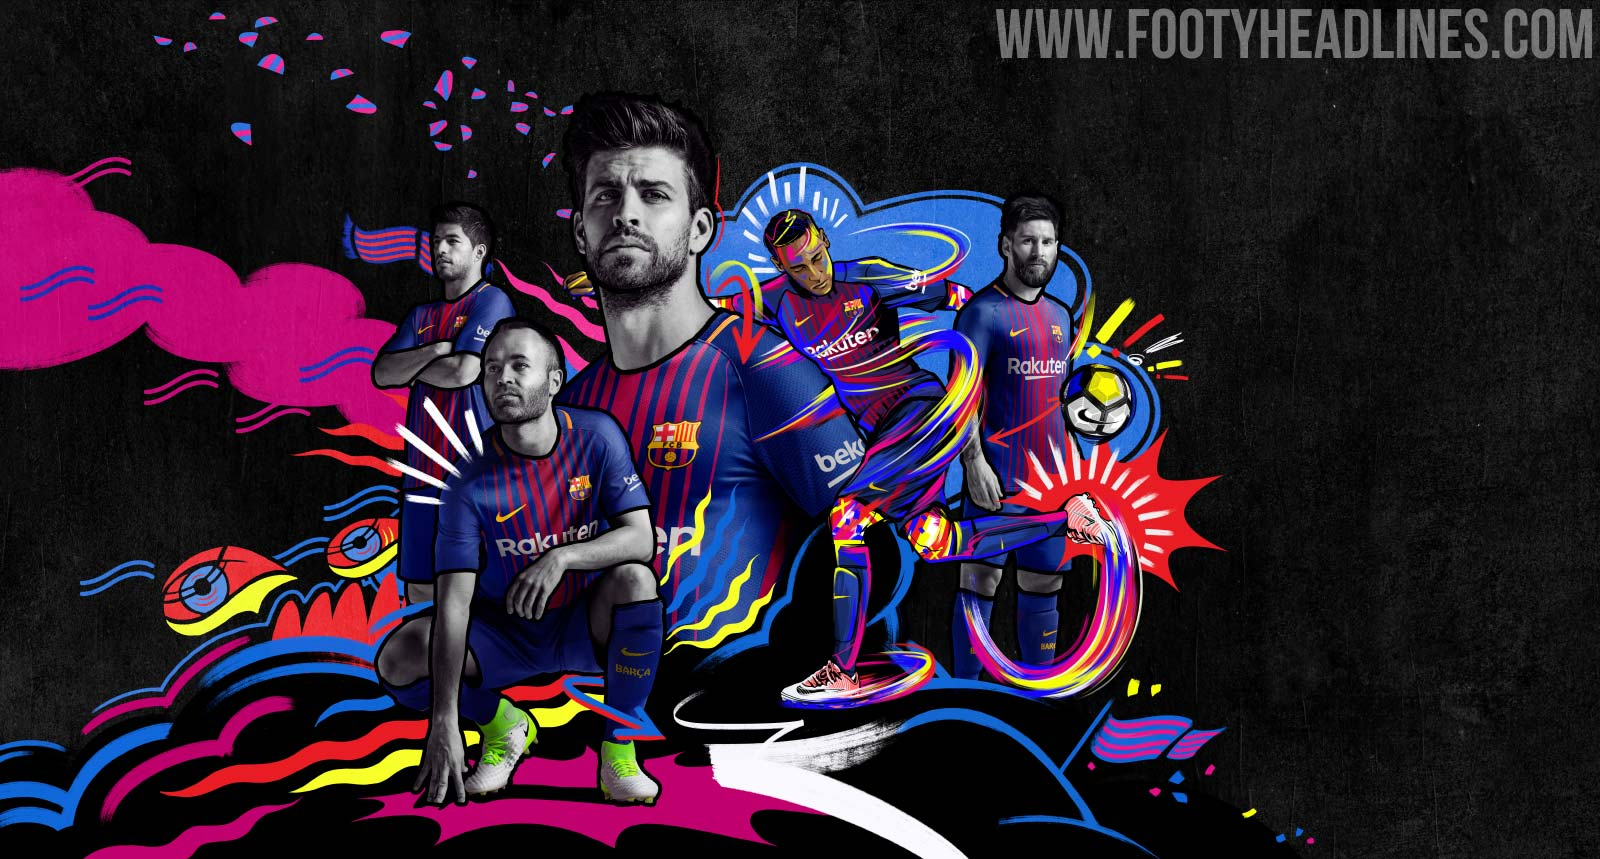 Barcelona 17-18 Home Kit Released - Footy Headlines